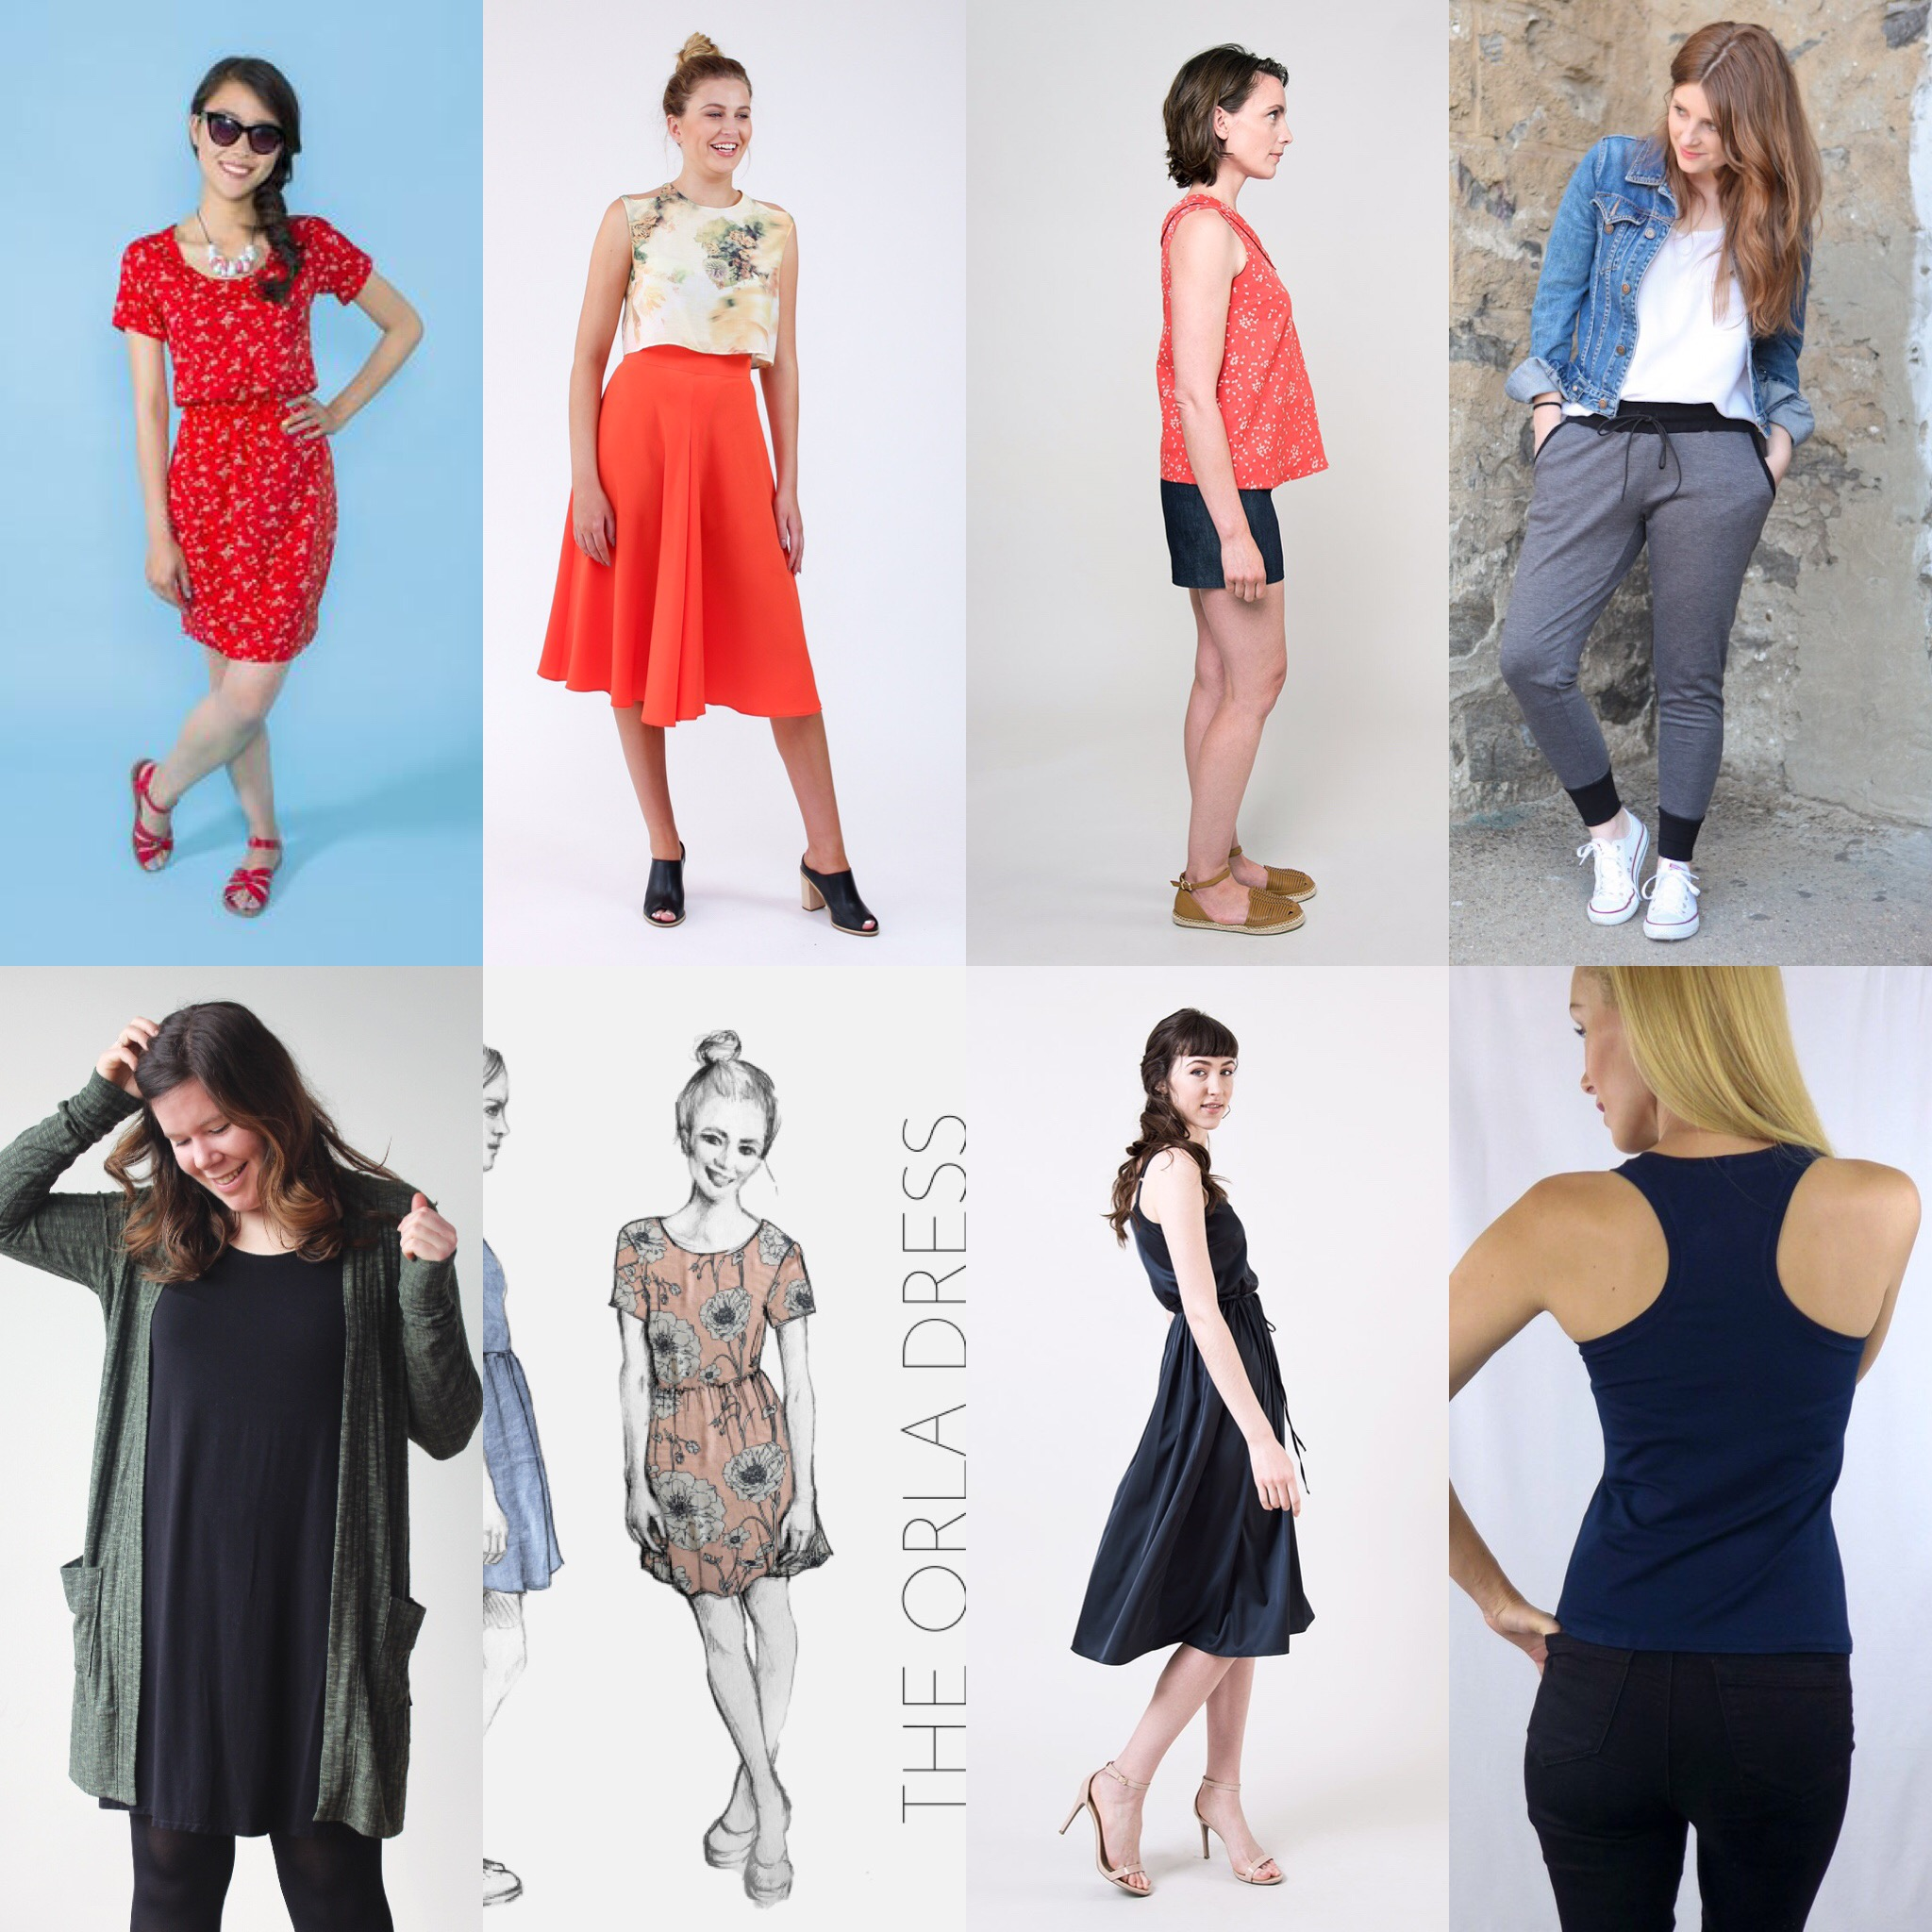 Top Left to Right: The  Bettine  dress, by Tilly and the Buttons;  Tania cullotes , by Megan Nielsen;  Addison  top ,by Seamwork; The  Hudson pants , by True Bias.  Bottom Left to right:  Blackwood cardigan , by Helen's closet;  The Orla dress ,by french navy now;  Catarina dress , by Seamwork;  Rumi Tan k, by Christine Haines.